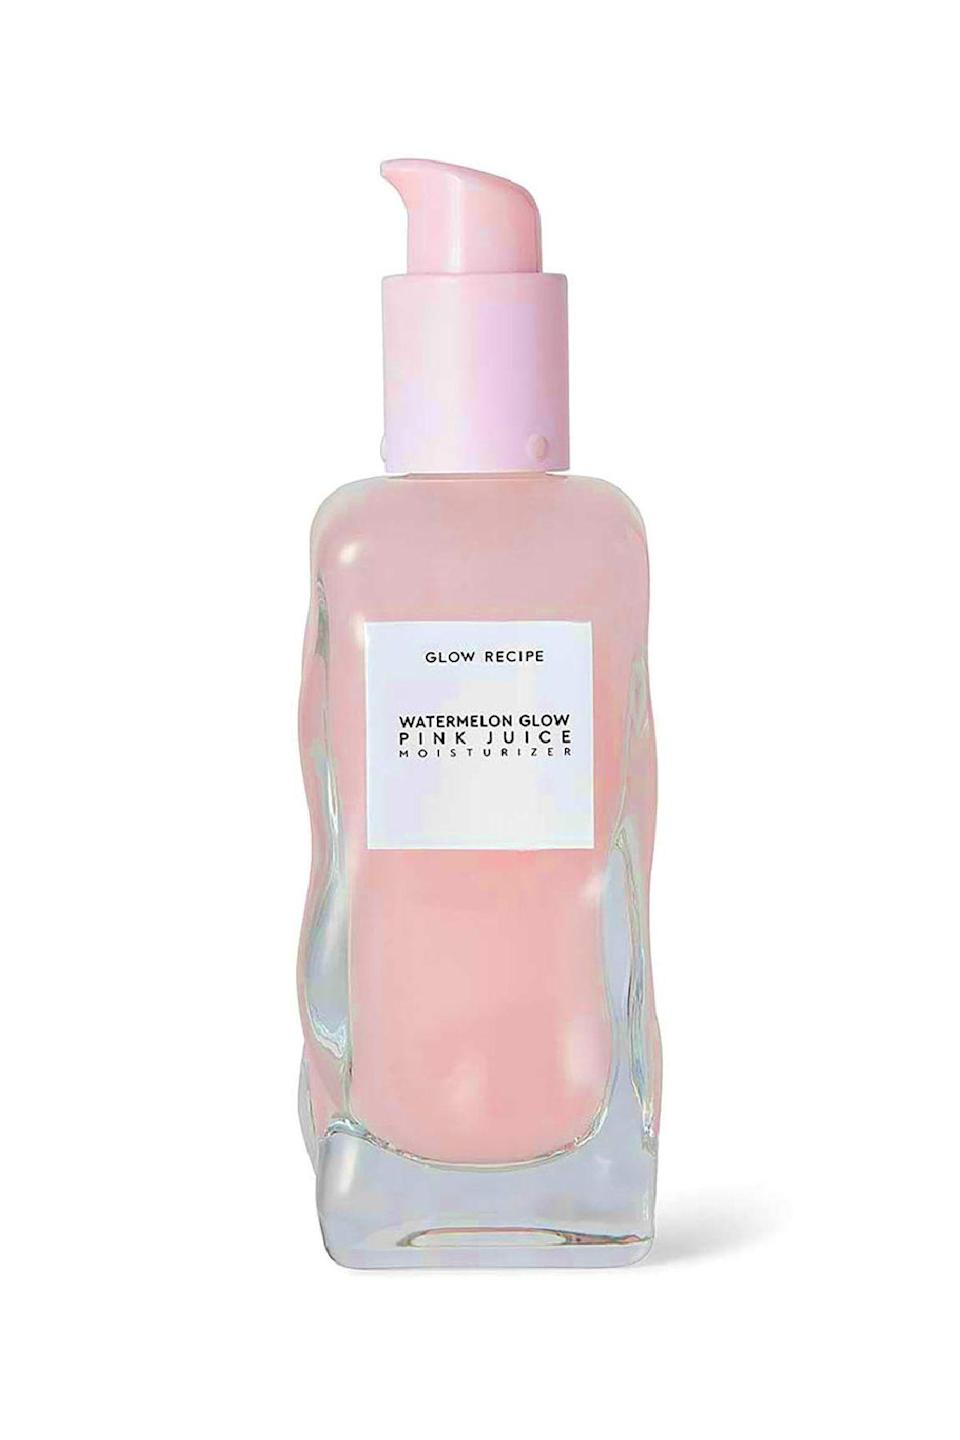 """<p><strong>Glow Recipe</strong></p><p>sephora.com</p><p><strong>$21.00</strong></p><p><a href=""""https://go.redirectingat.com?id=74968X1596630&url=https%3A%2F%2Fwww.sephora.com%2Fproduct%2Fwatermelon-pink-juice-moisturizer-P428819&sref=https%3A%2F%2Fwww.marieclaire.com%2Fbeauty%2Fg34399769%2Fbest-oil-free-moisturizers%2F"""" rel=""""nofollow noopener"""" target=""""_blank"""" data-ylk=""""slk:SHOP IT"""" class=""""link rapid-noclick-resp"""">SHOP IT</a></p><p>Breathe me in, breathe me out. Watermelon extract is the first and most prominent ingredient in this pleasing pink elixir. Here it combines with hyaluronic acid and peony and sweet potato extracts to deliver an efficacious and fun-to-use hydration. </p>"""